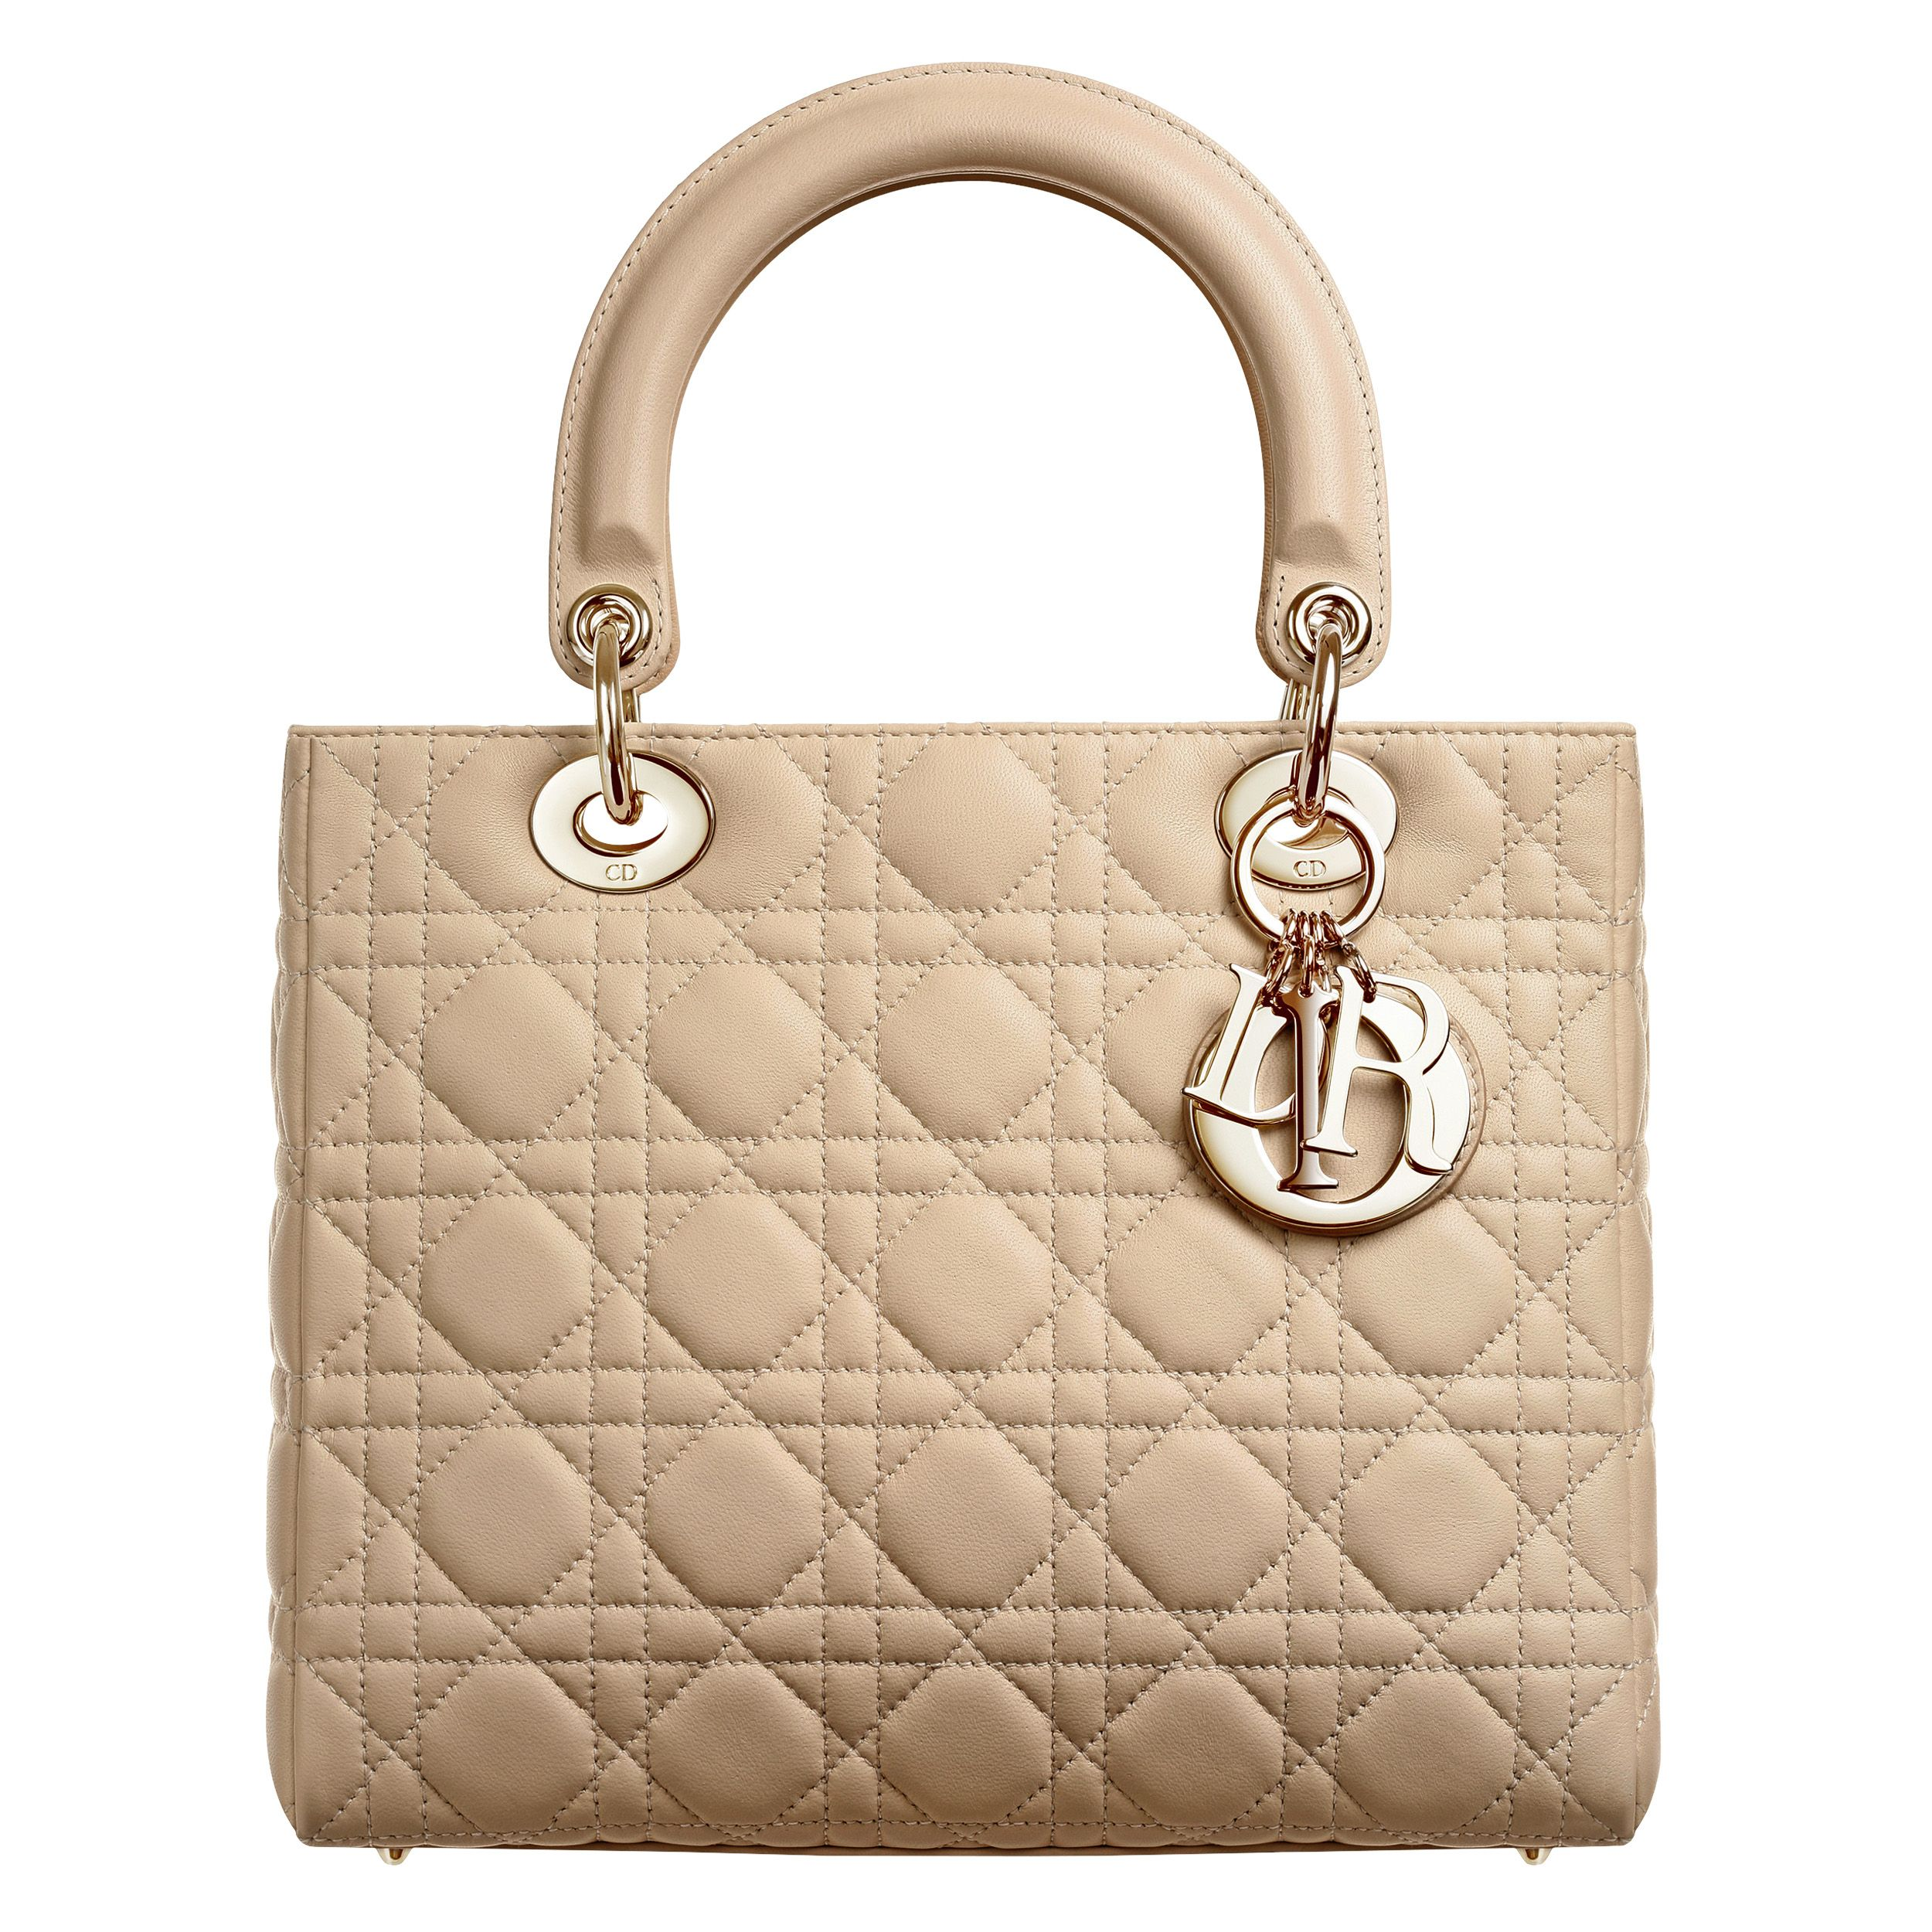 LADY DIOR - Lady Dior bag in beige leather